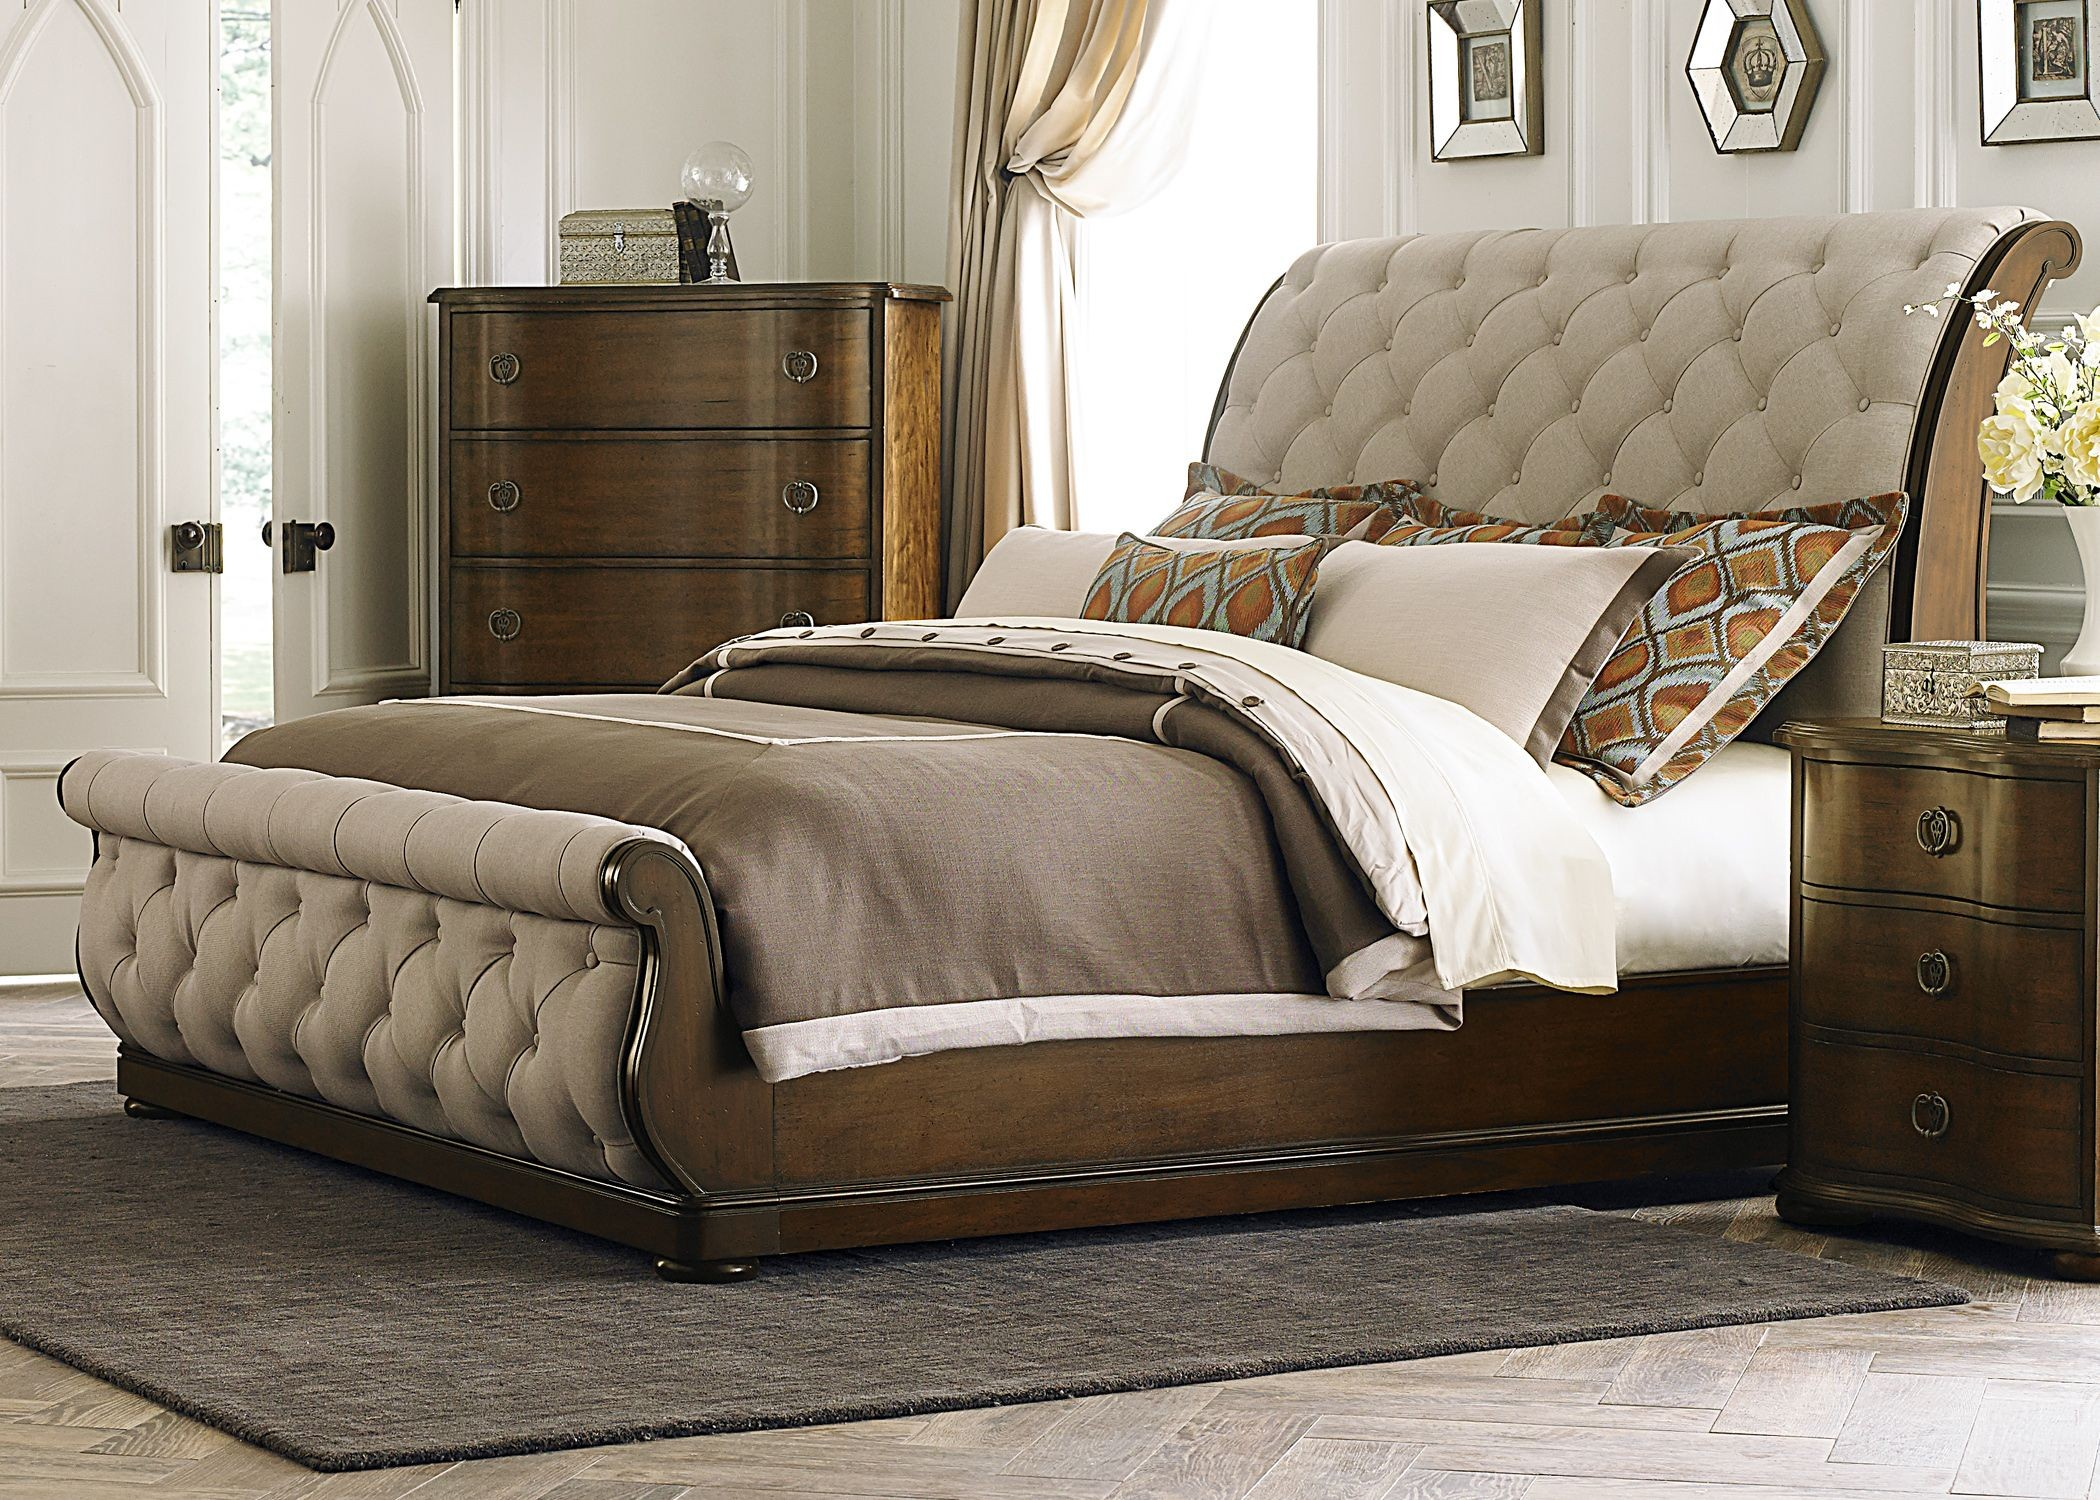 Cotswold king upholstered sleigh bed from liberty 545 br - King size sleigh bed bedroom set ...